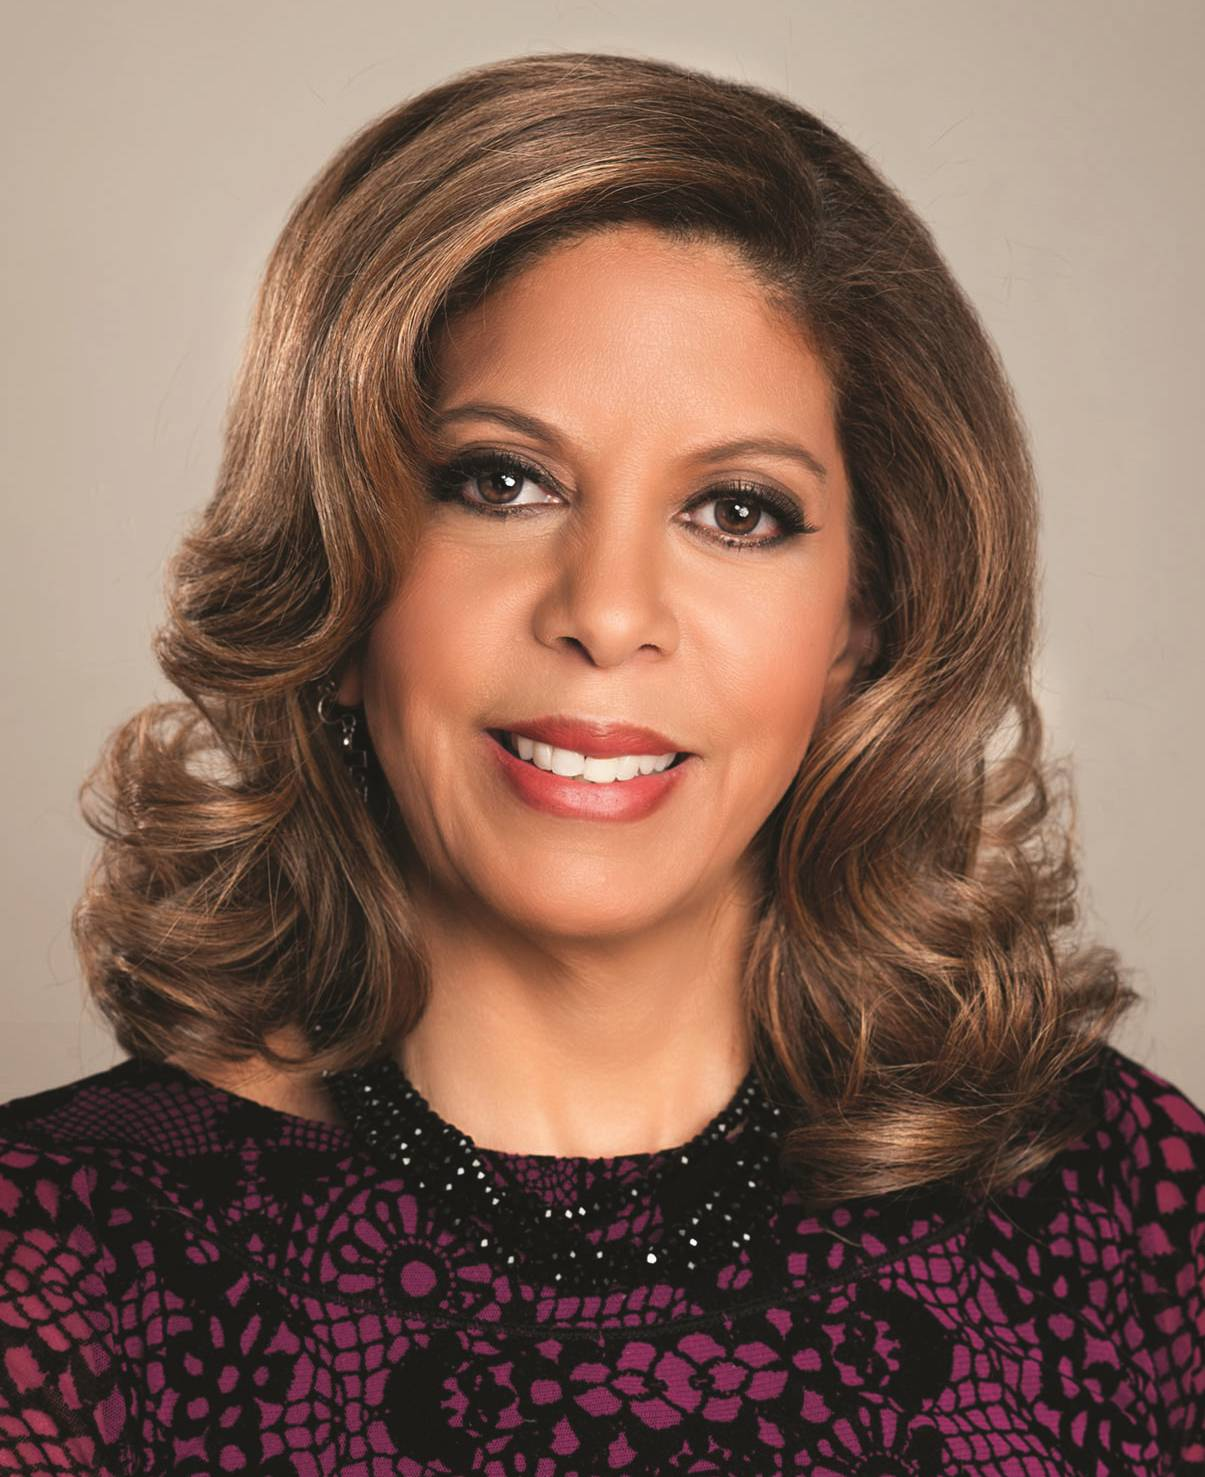 Urban League CEO Andrea Zopp is running for U.S. Senate.